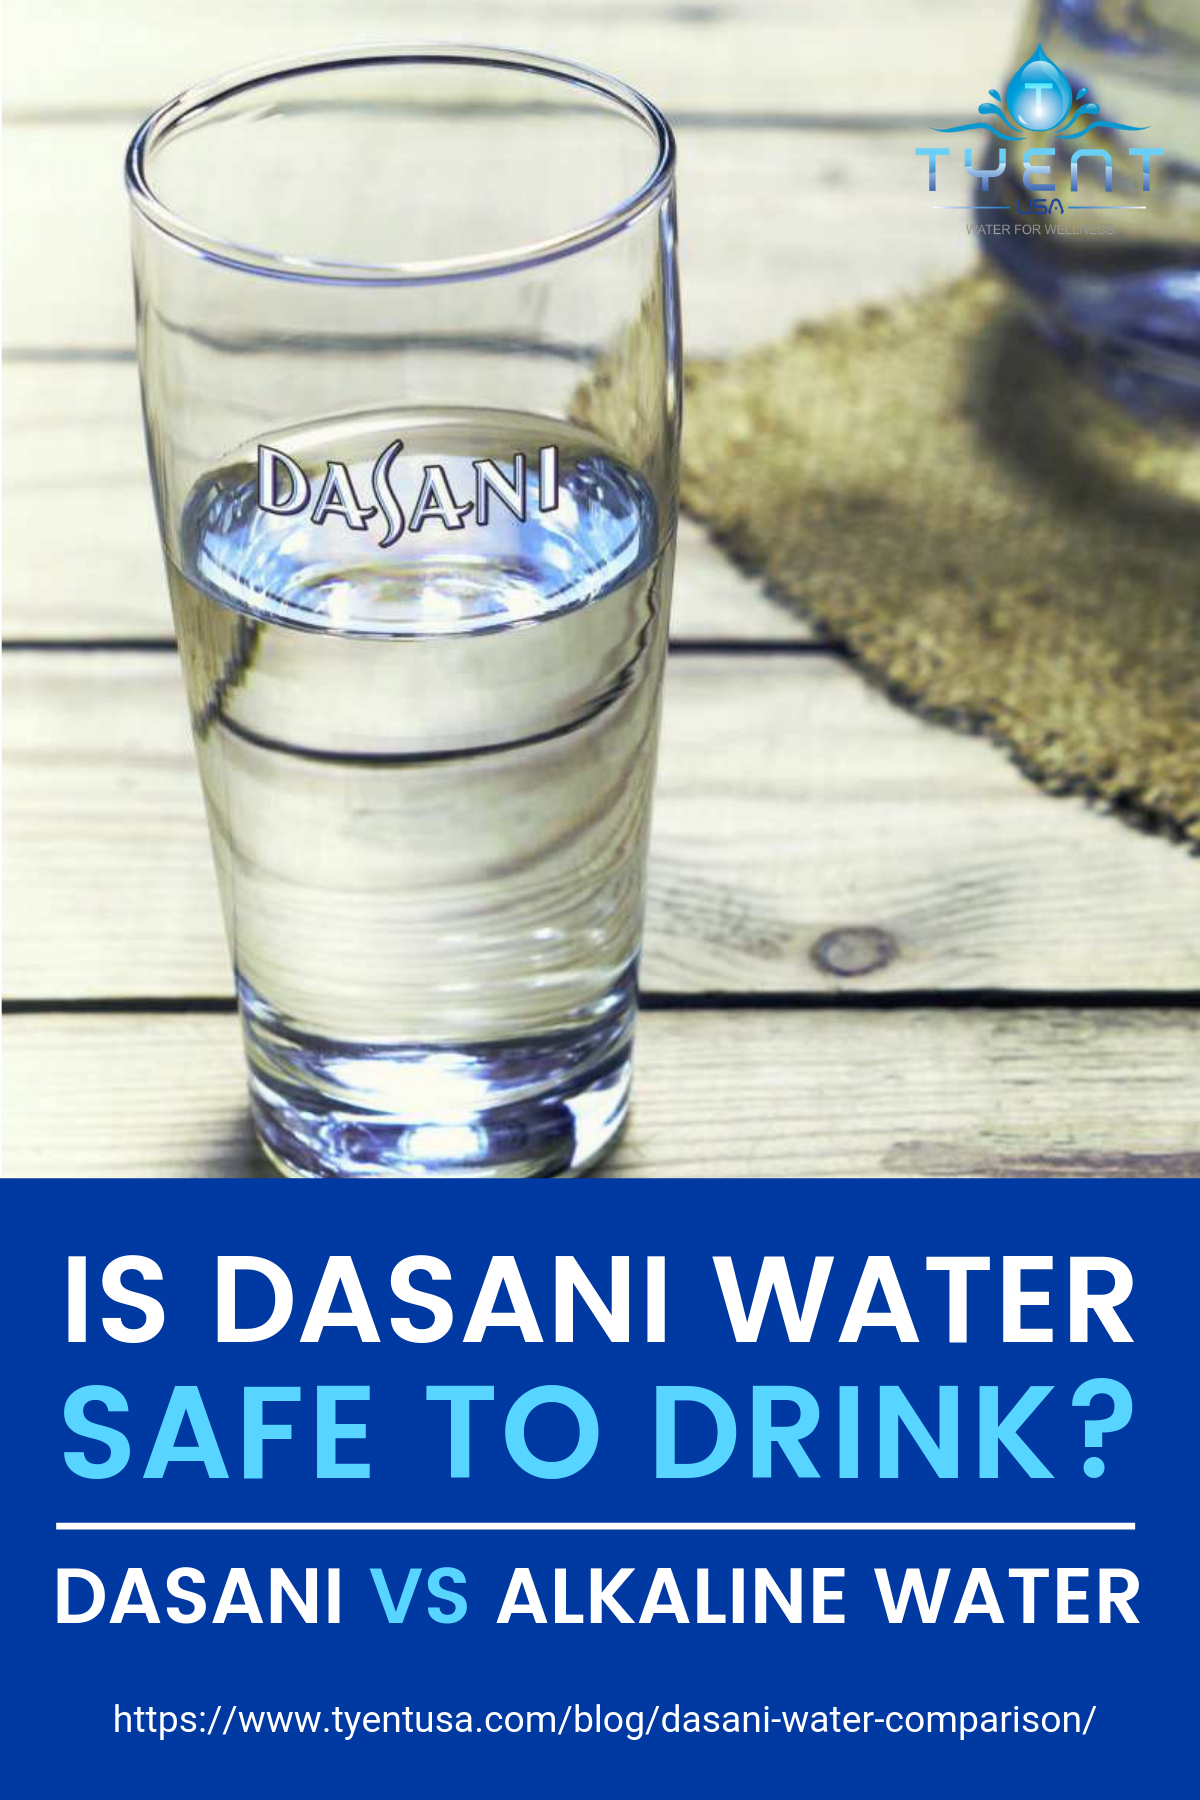 Is Dasani Water Safe To Drink? | Dasani Vs Alkaline Water https://www.tyentusa.com/blog/dasani-water-comparison/